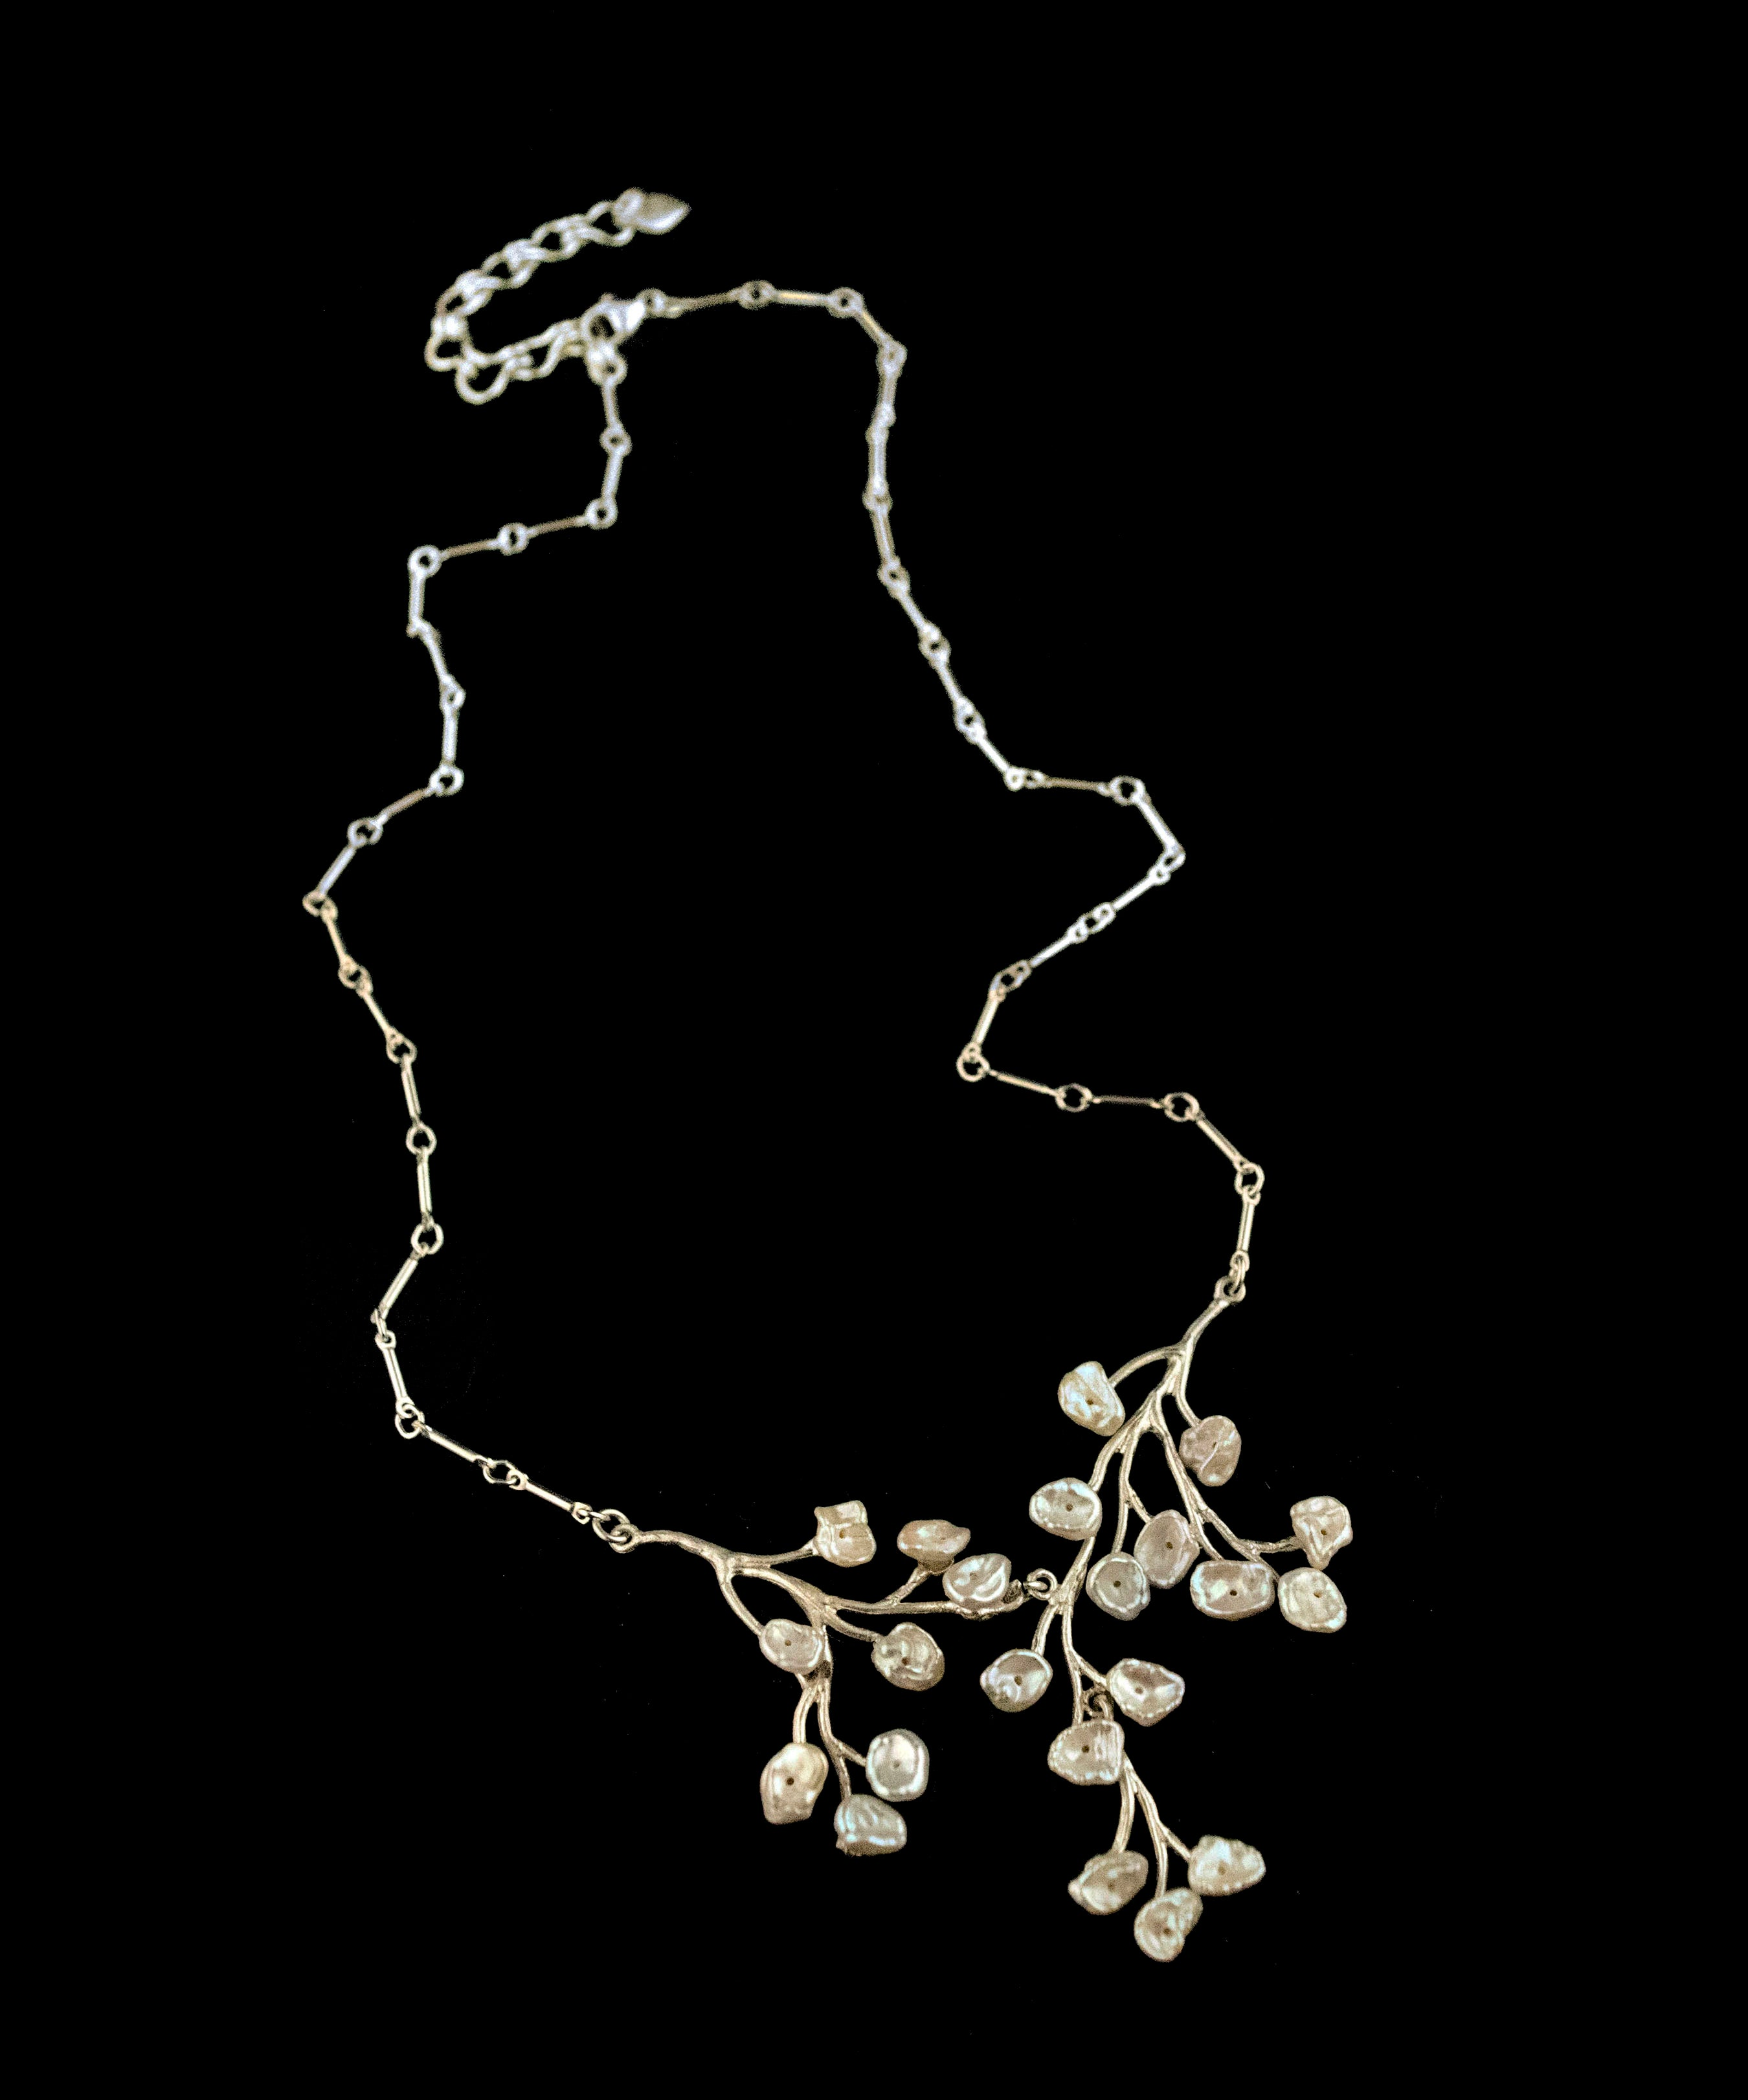 Fine Baby's Breath Necklace